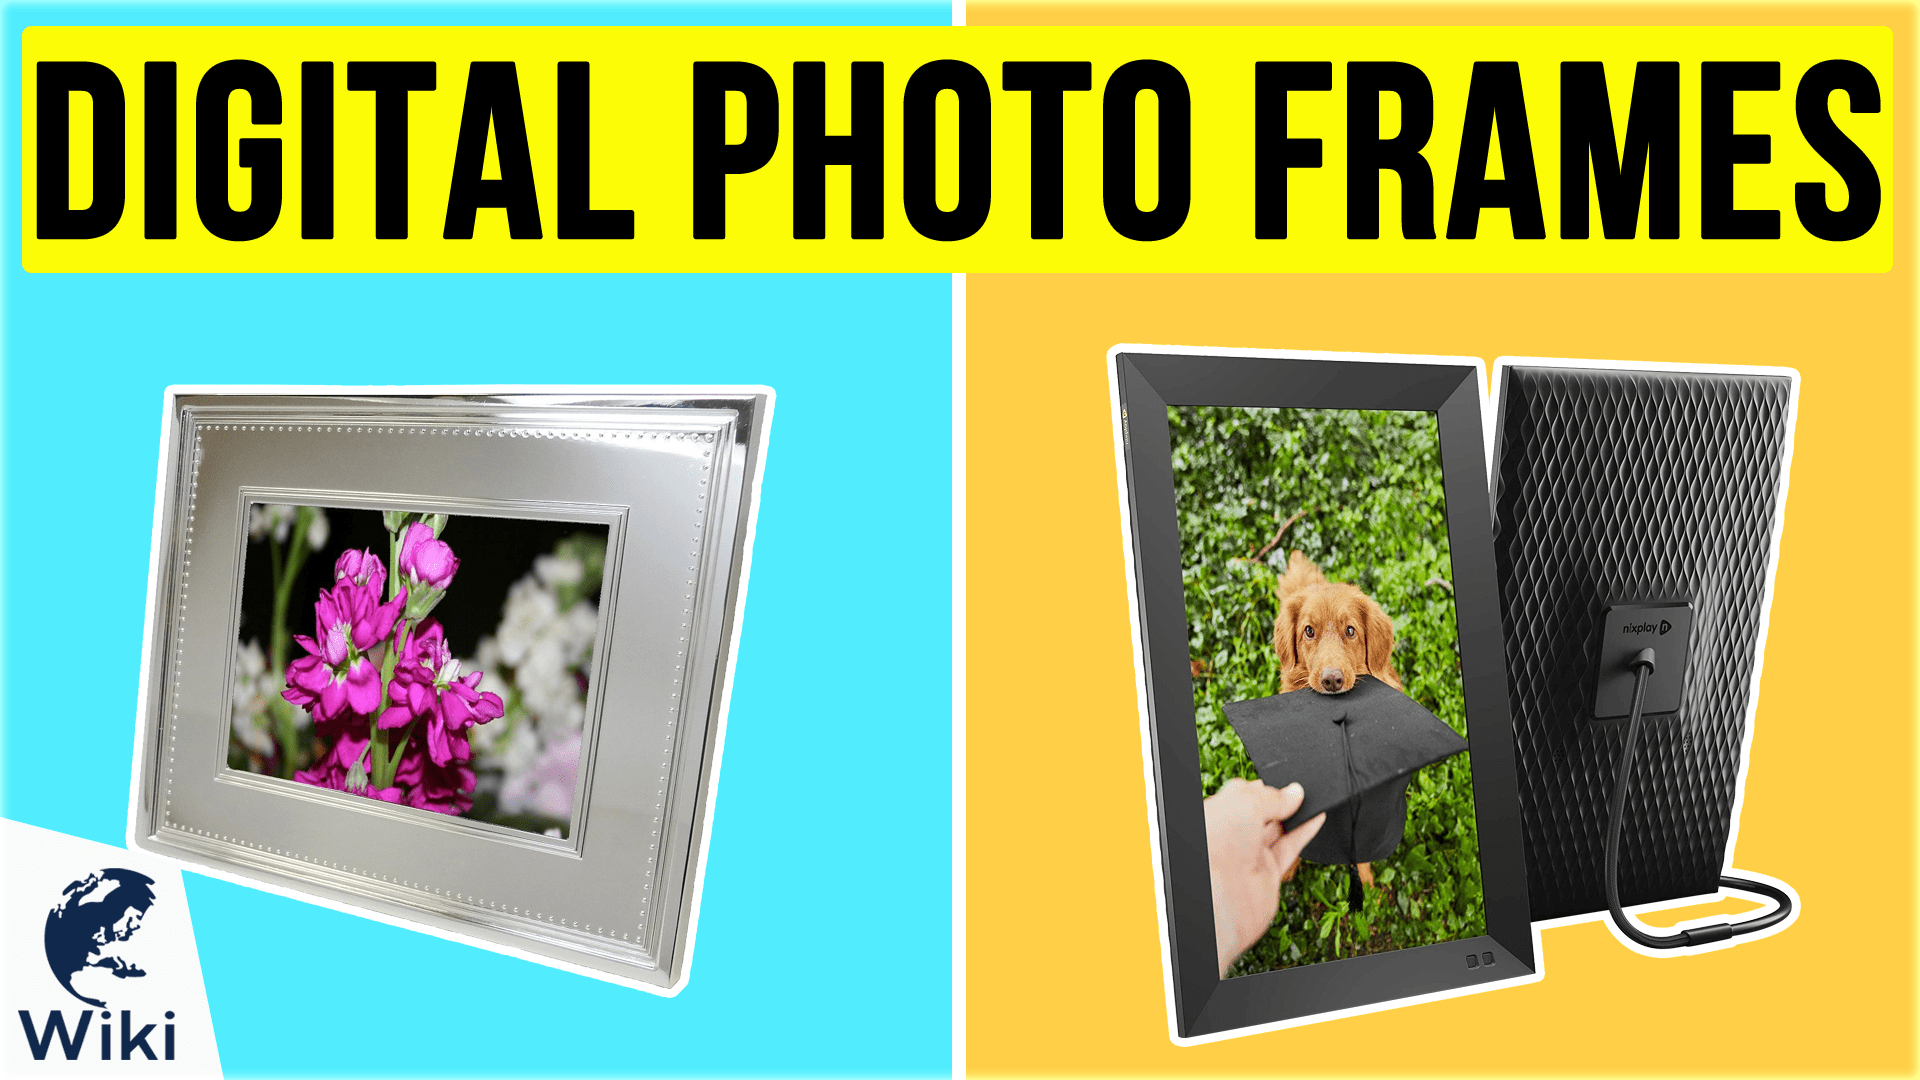 GEQWE Digital Photo Frame 18.5 Inch Digital Photo Frame 1366768 Pixels High Resolution LED Screen 1080P HD Video Playback Auto On//Off Timer Display and Share Photos with Friends